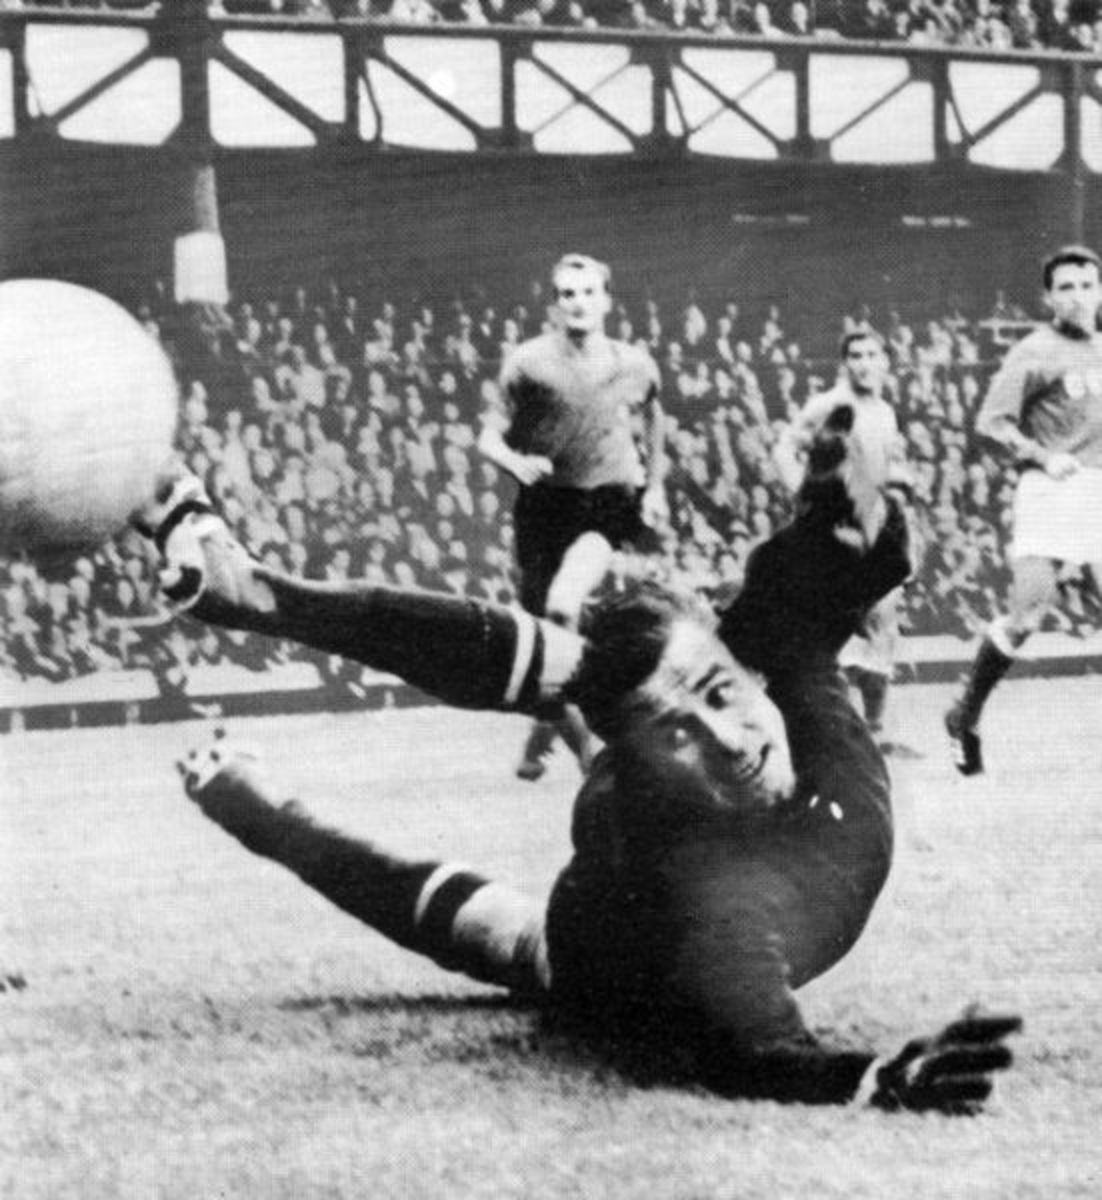 Lev Yashin the Goalkeeper